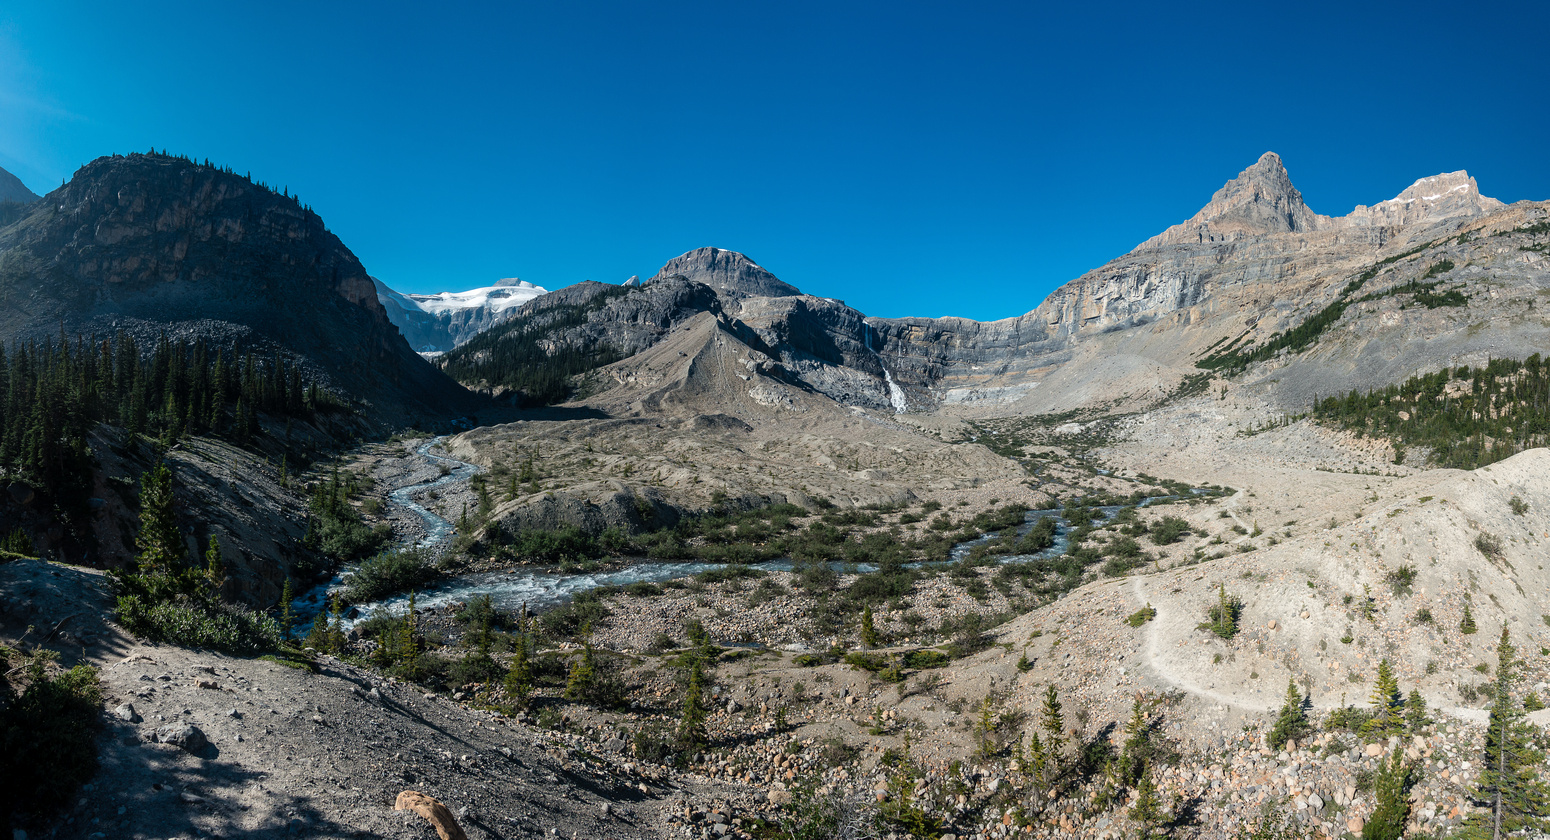 Portal on the top right, the moraine access route in the center and the Bow Hut approach on the left.